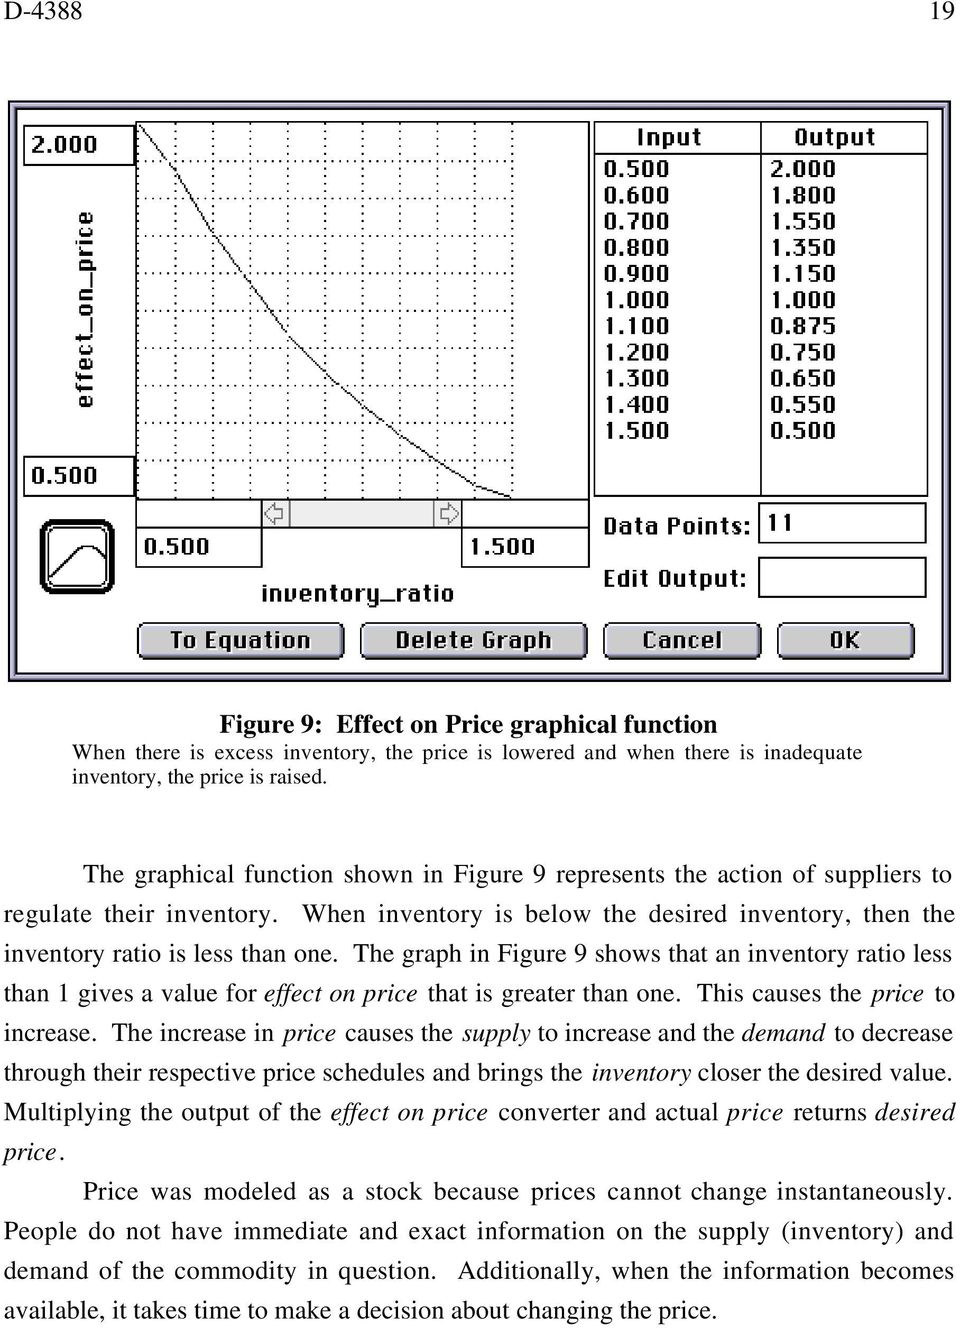 The graph in Figure 9 shows that an inventory ratio less than gives a value for effect on price that is greater than one. This causes the price to increase.